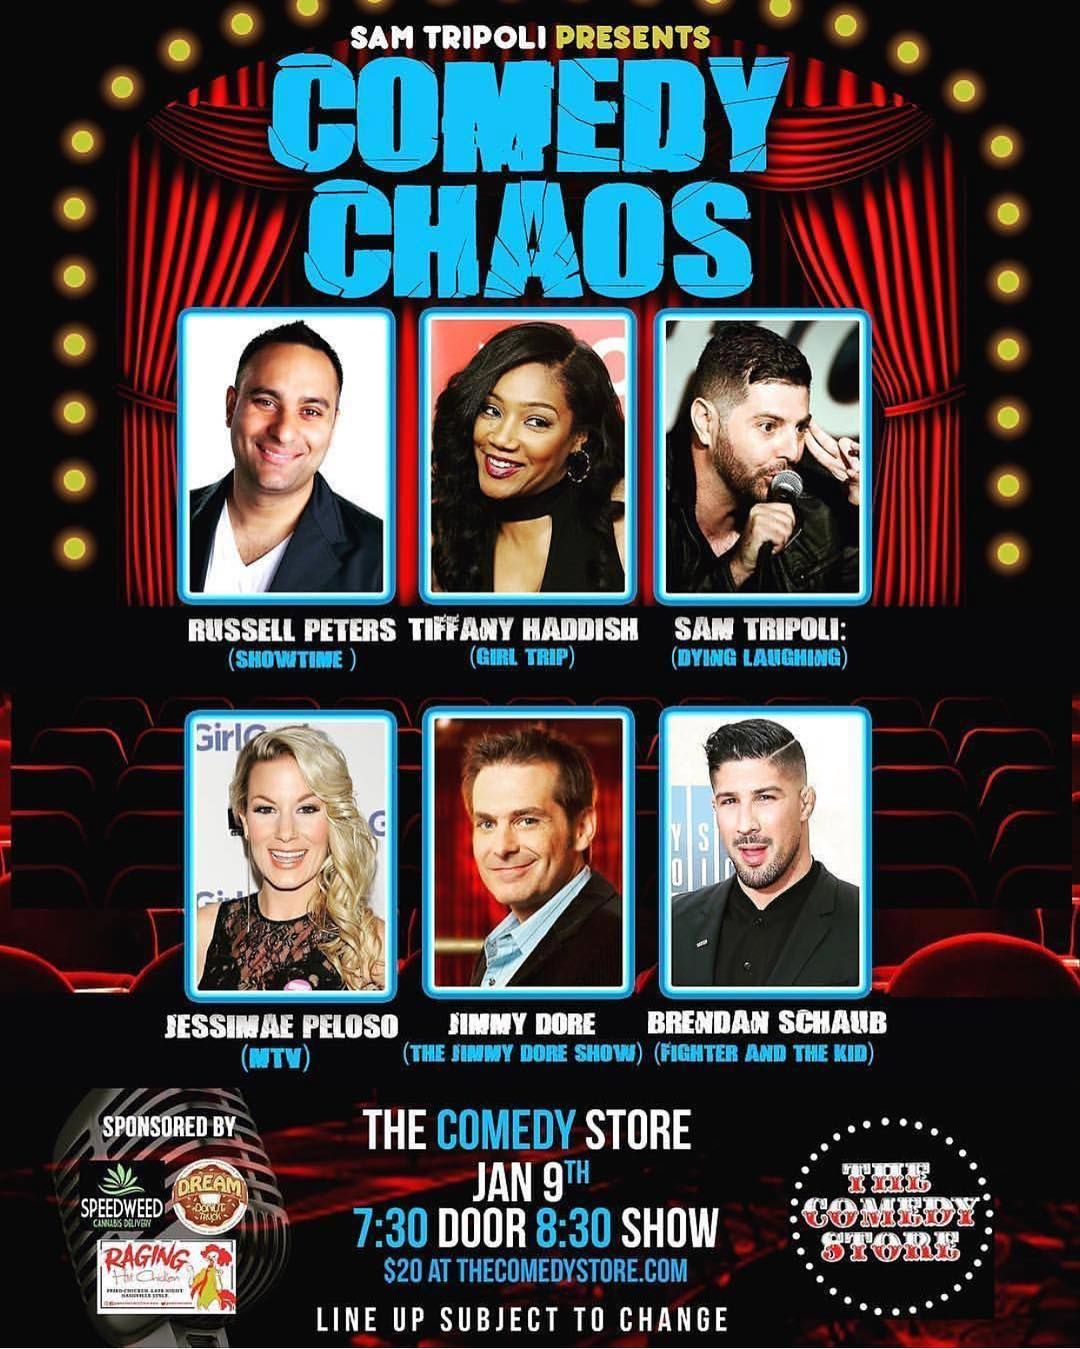 #Repost @thejimmydoreshow  @samtripoli  This Tuesday Night Jan 9th Live at @thecomedystore its Comedy Chaos with @tiffanyhaddish @russellpeters @jessimaepeluso @thejimmydoreshow and @brendanschaub! Donuts  with @dreamdonuttruck  #TYT #TYTComedy #JimmyDore #TheComedyStore